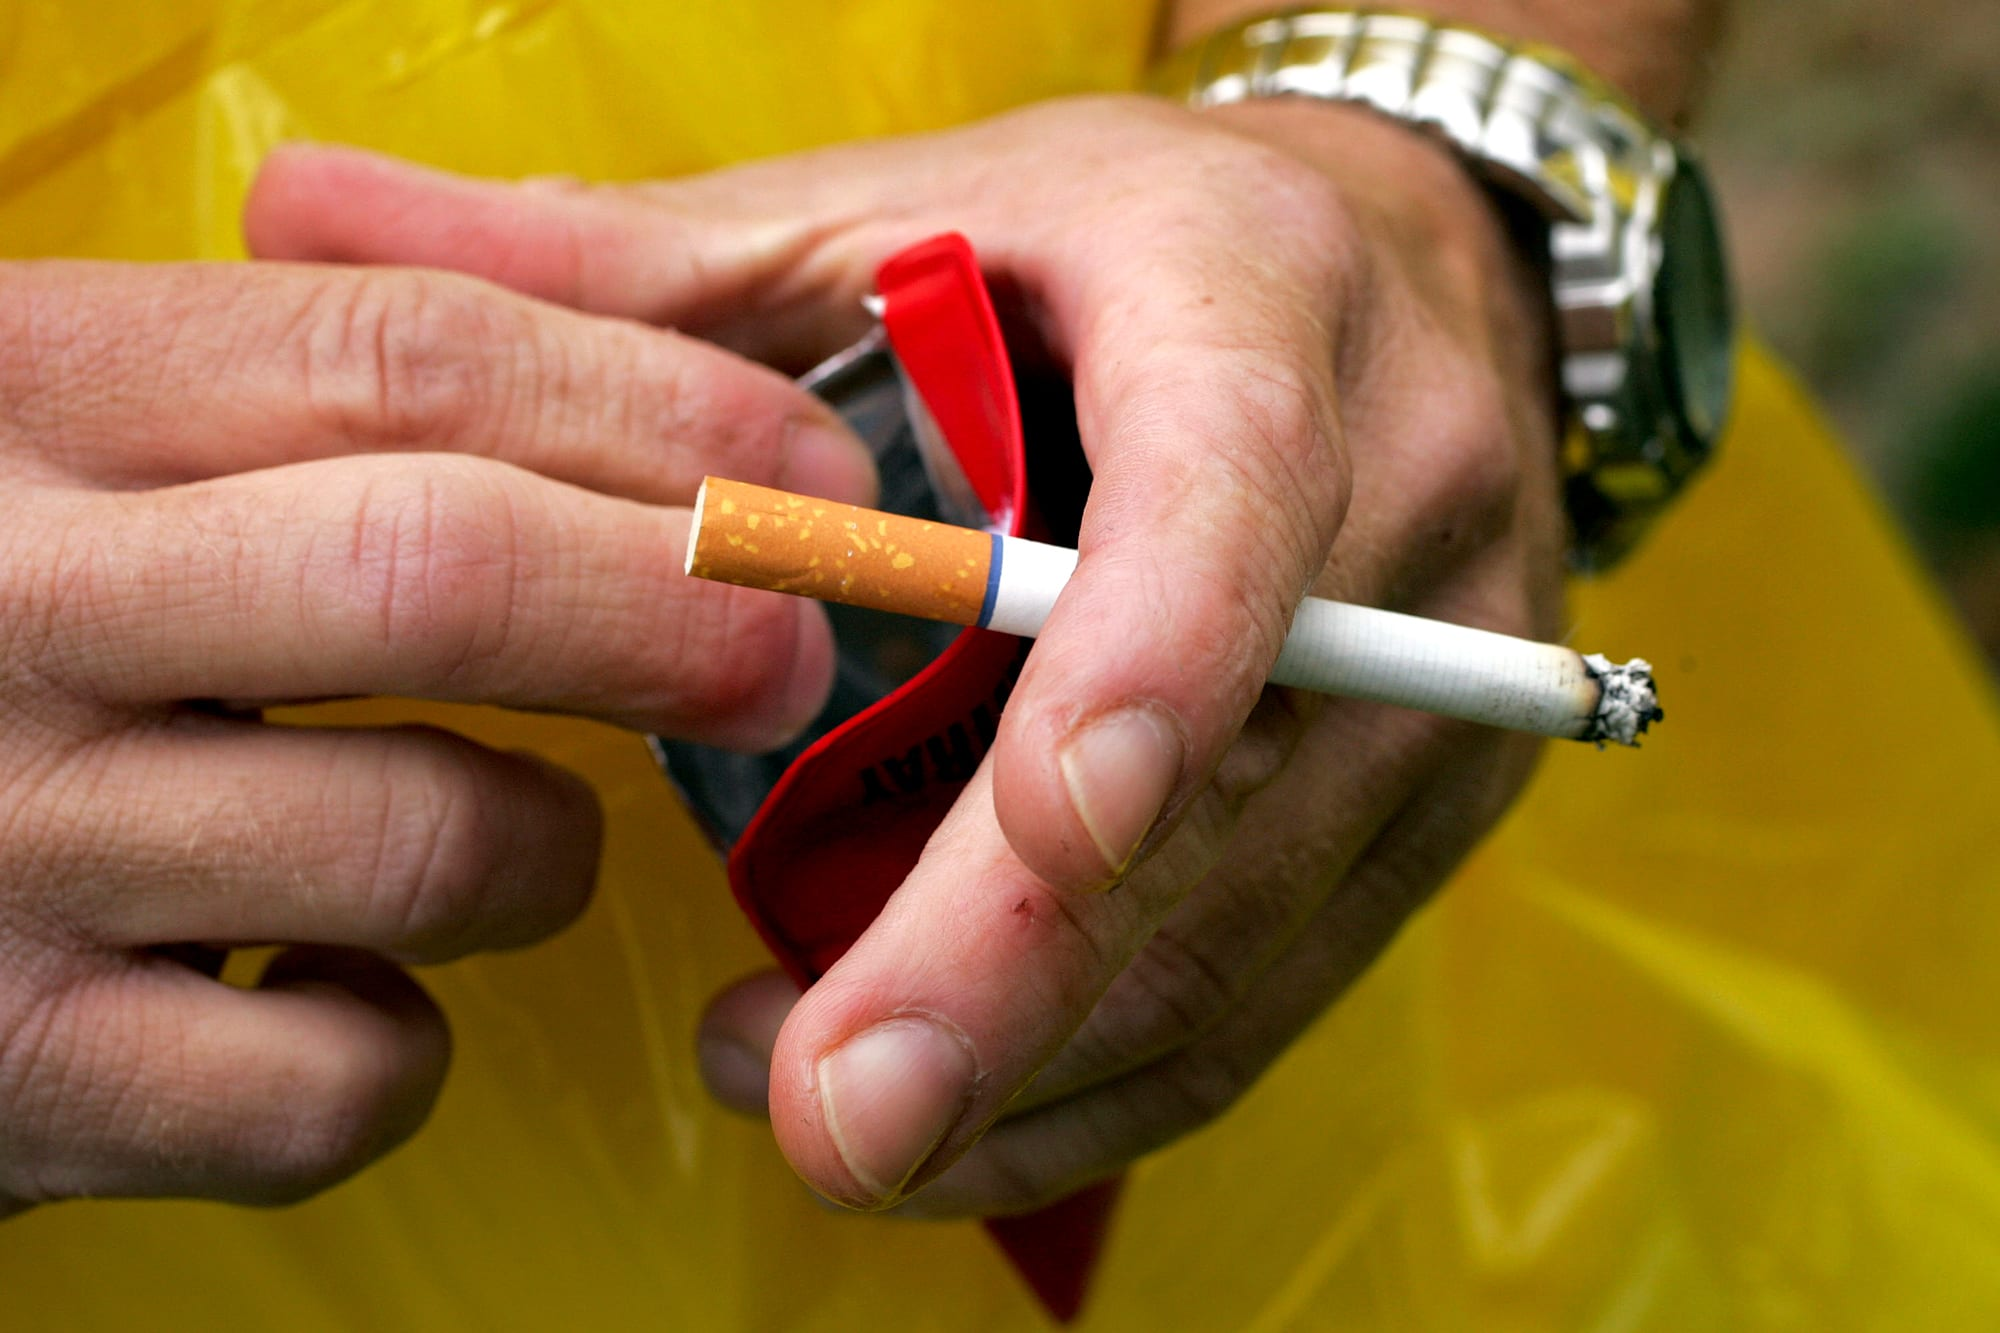 US lawmakers are working on a deal to raise tobacco age, repeal unpopular Obamacare tax as part of spending package